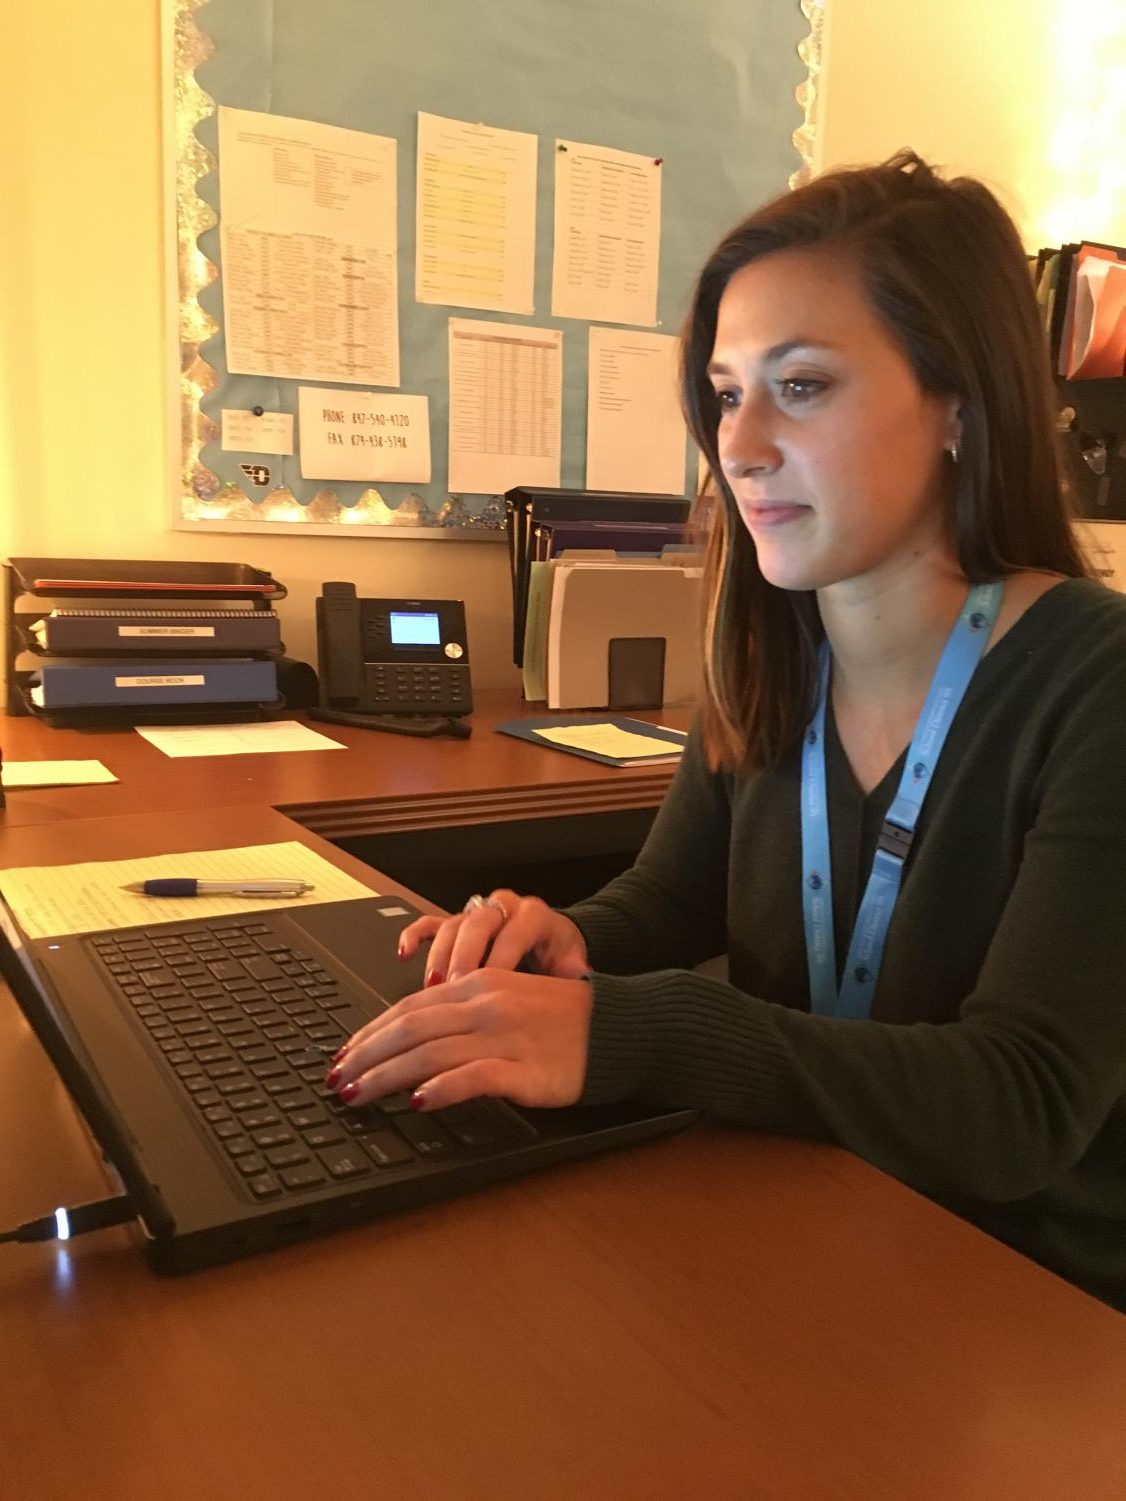 Levato often works on her computer responding to students and staff through email.